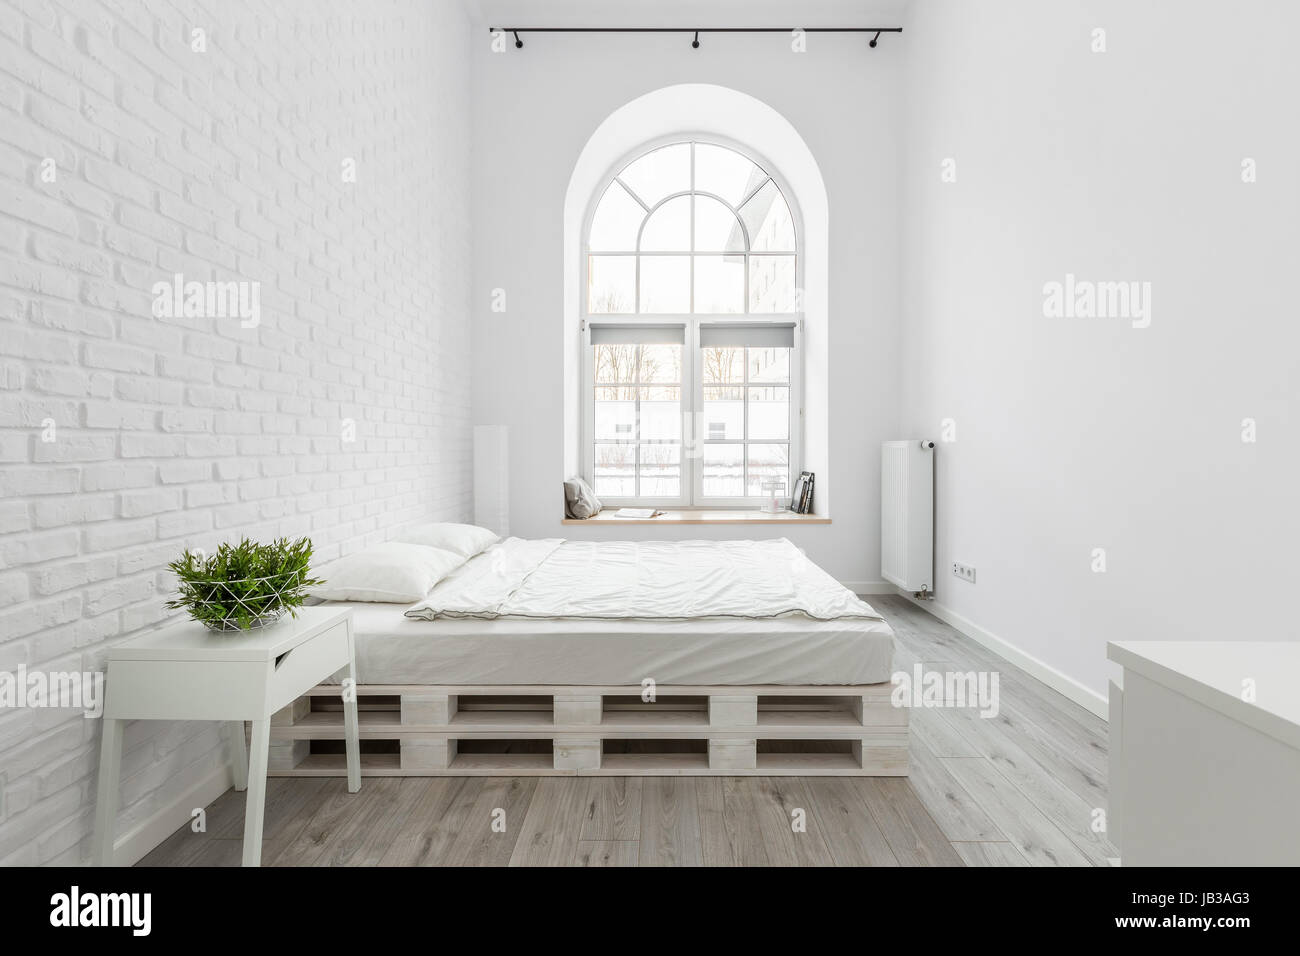 half circle window motorized loft bedroom with white brick wall pallet bed and half circle window